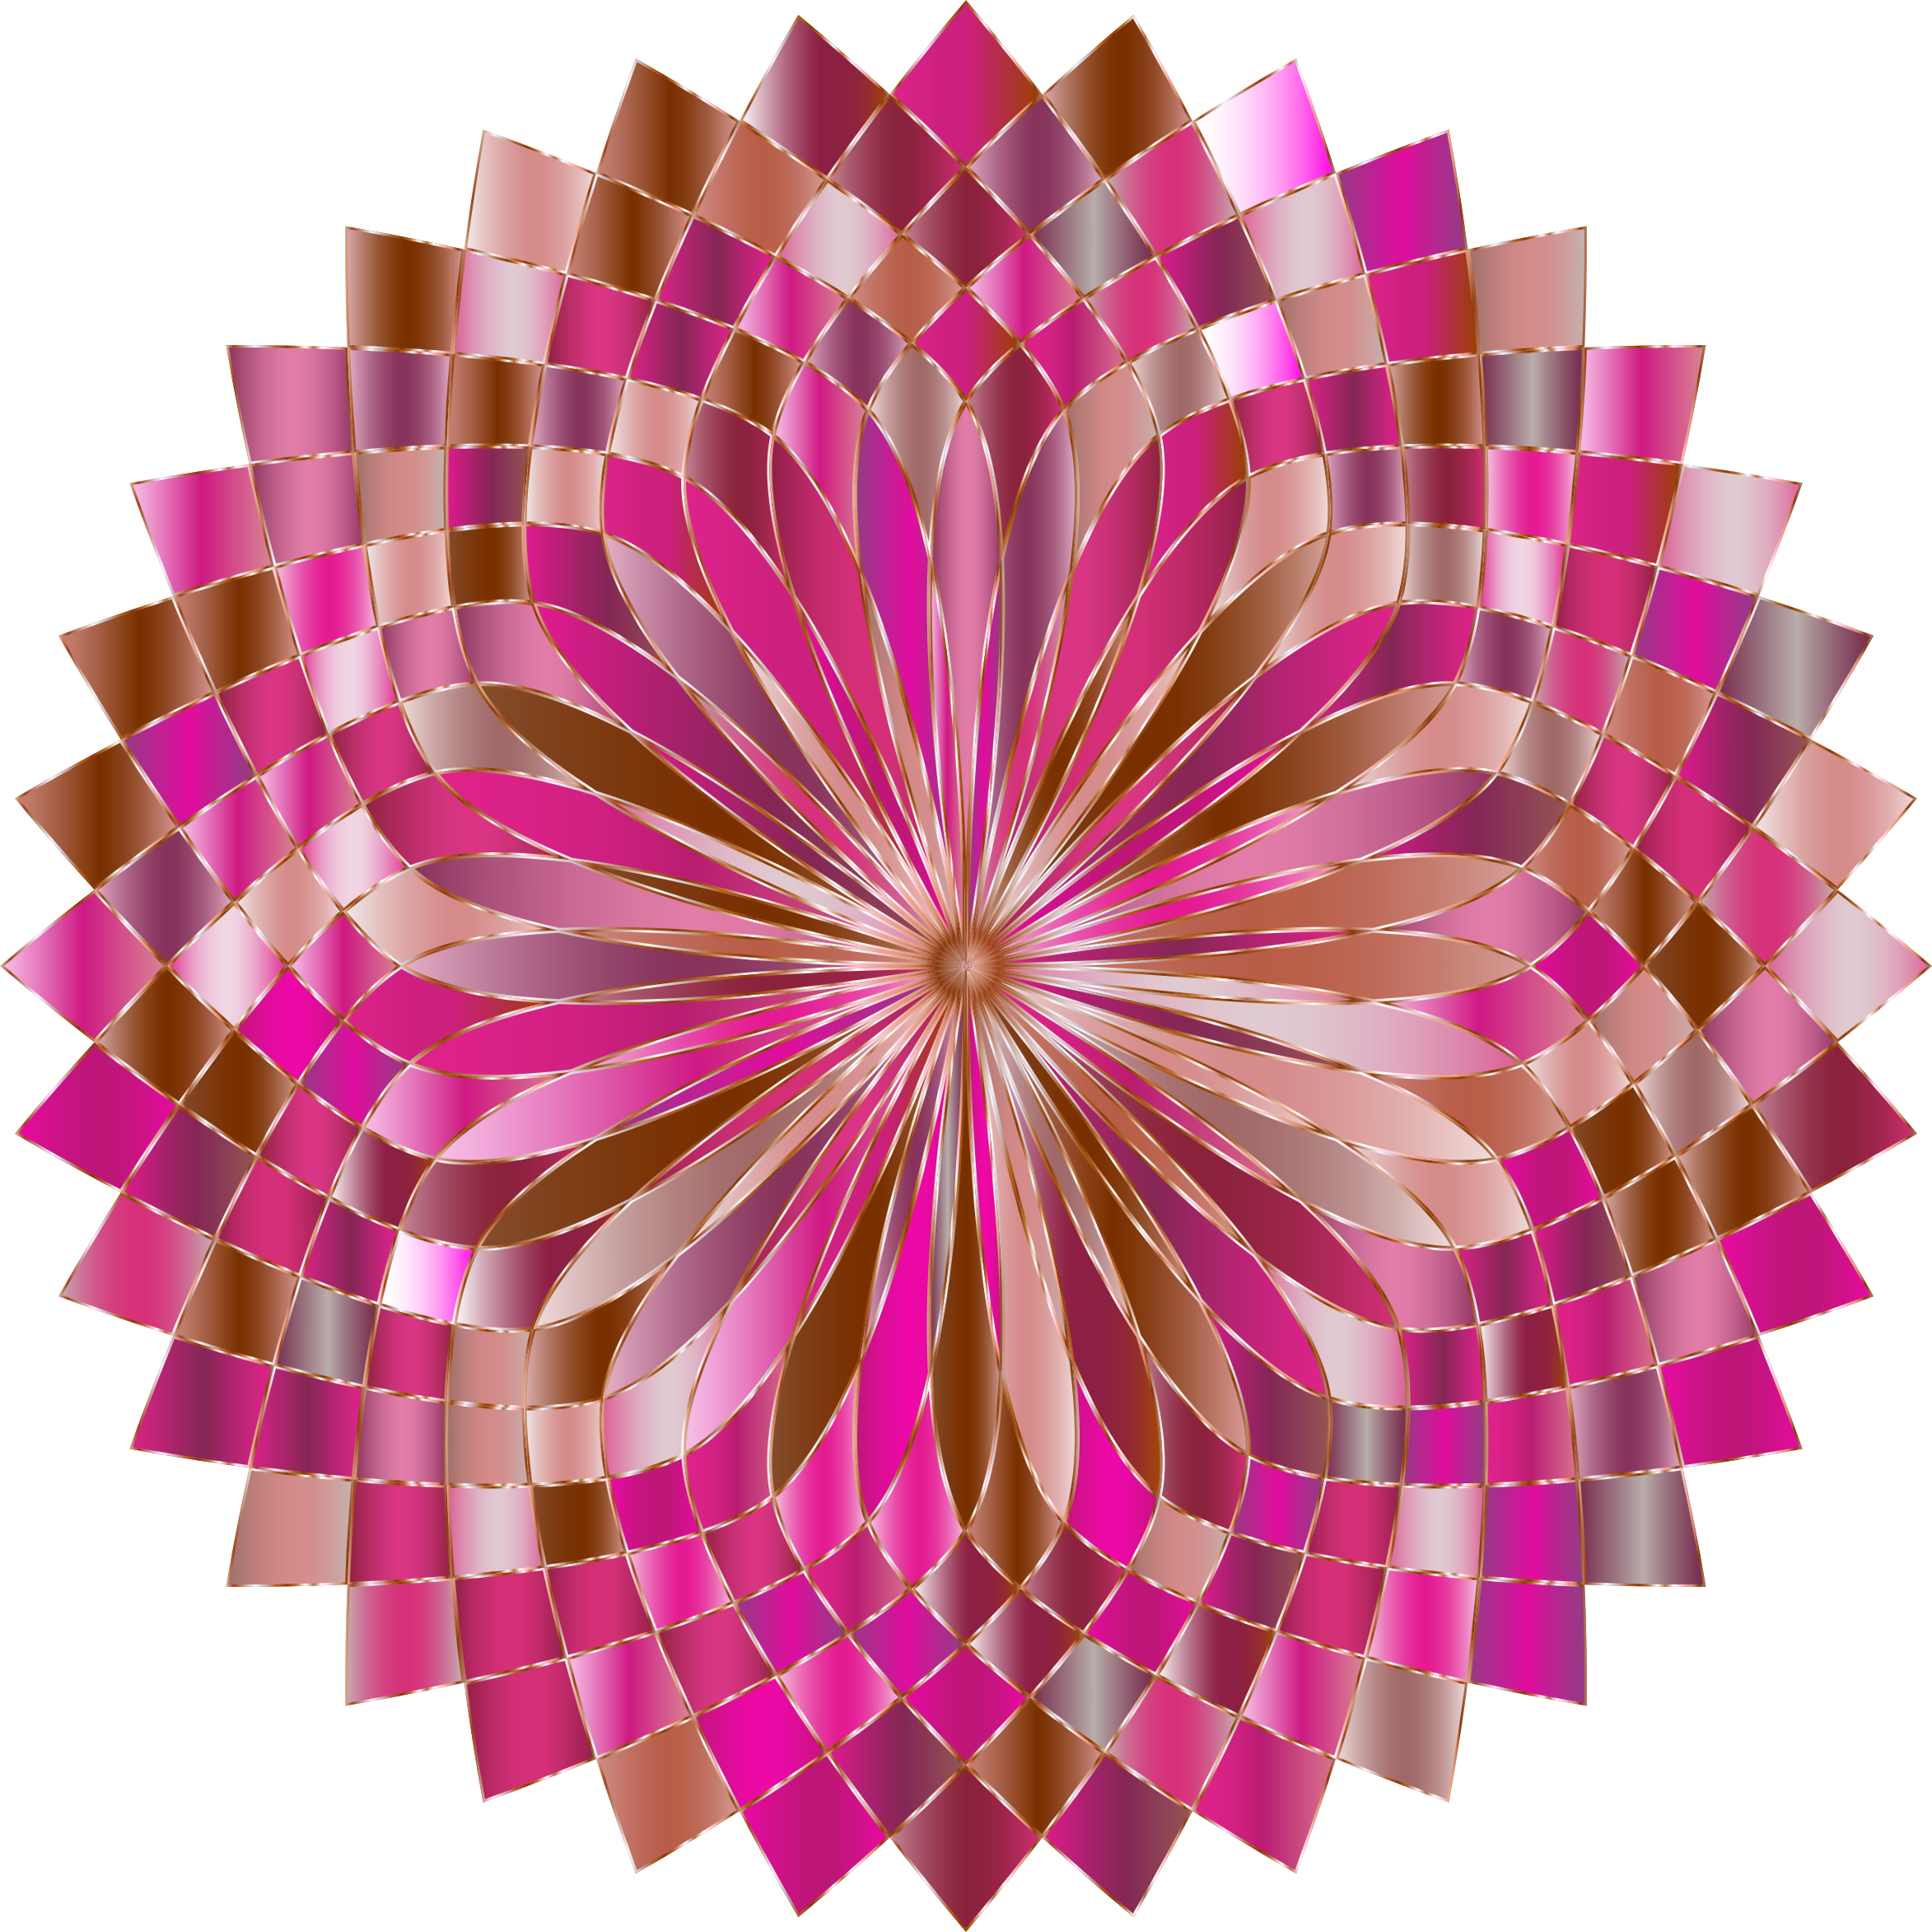 Prismatic Lotus Bloom 5 Variation 3 by GDJ